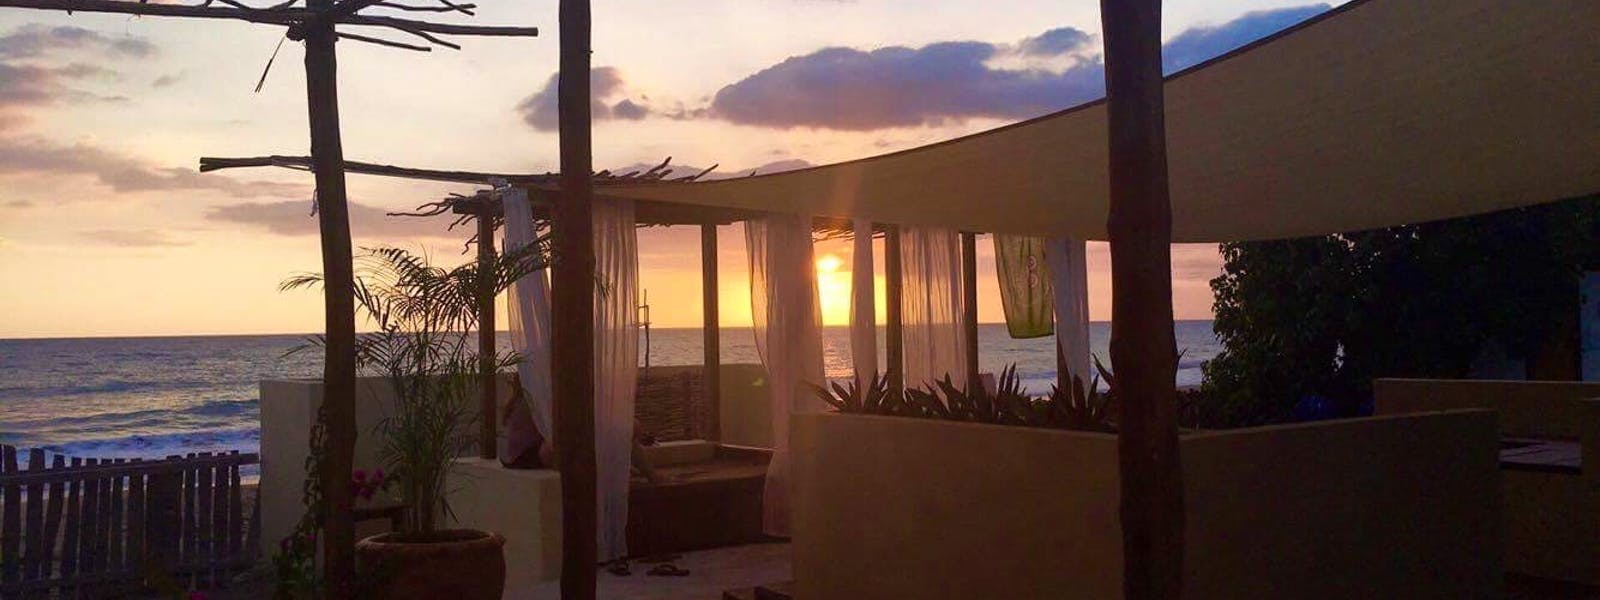 Katamah Jamaica Beachfront Guesthouse Ocean View Treasure Beach Sunset